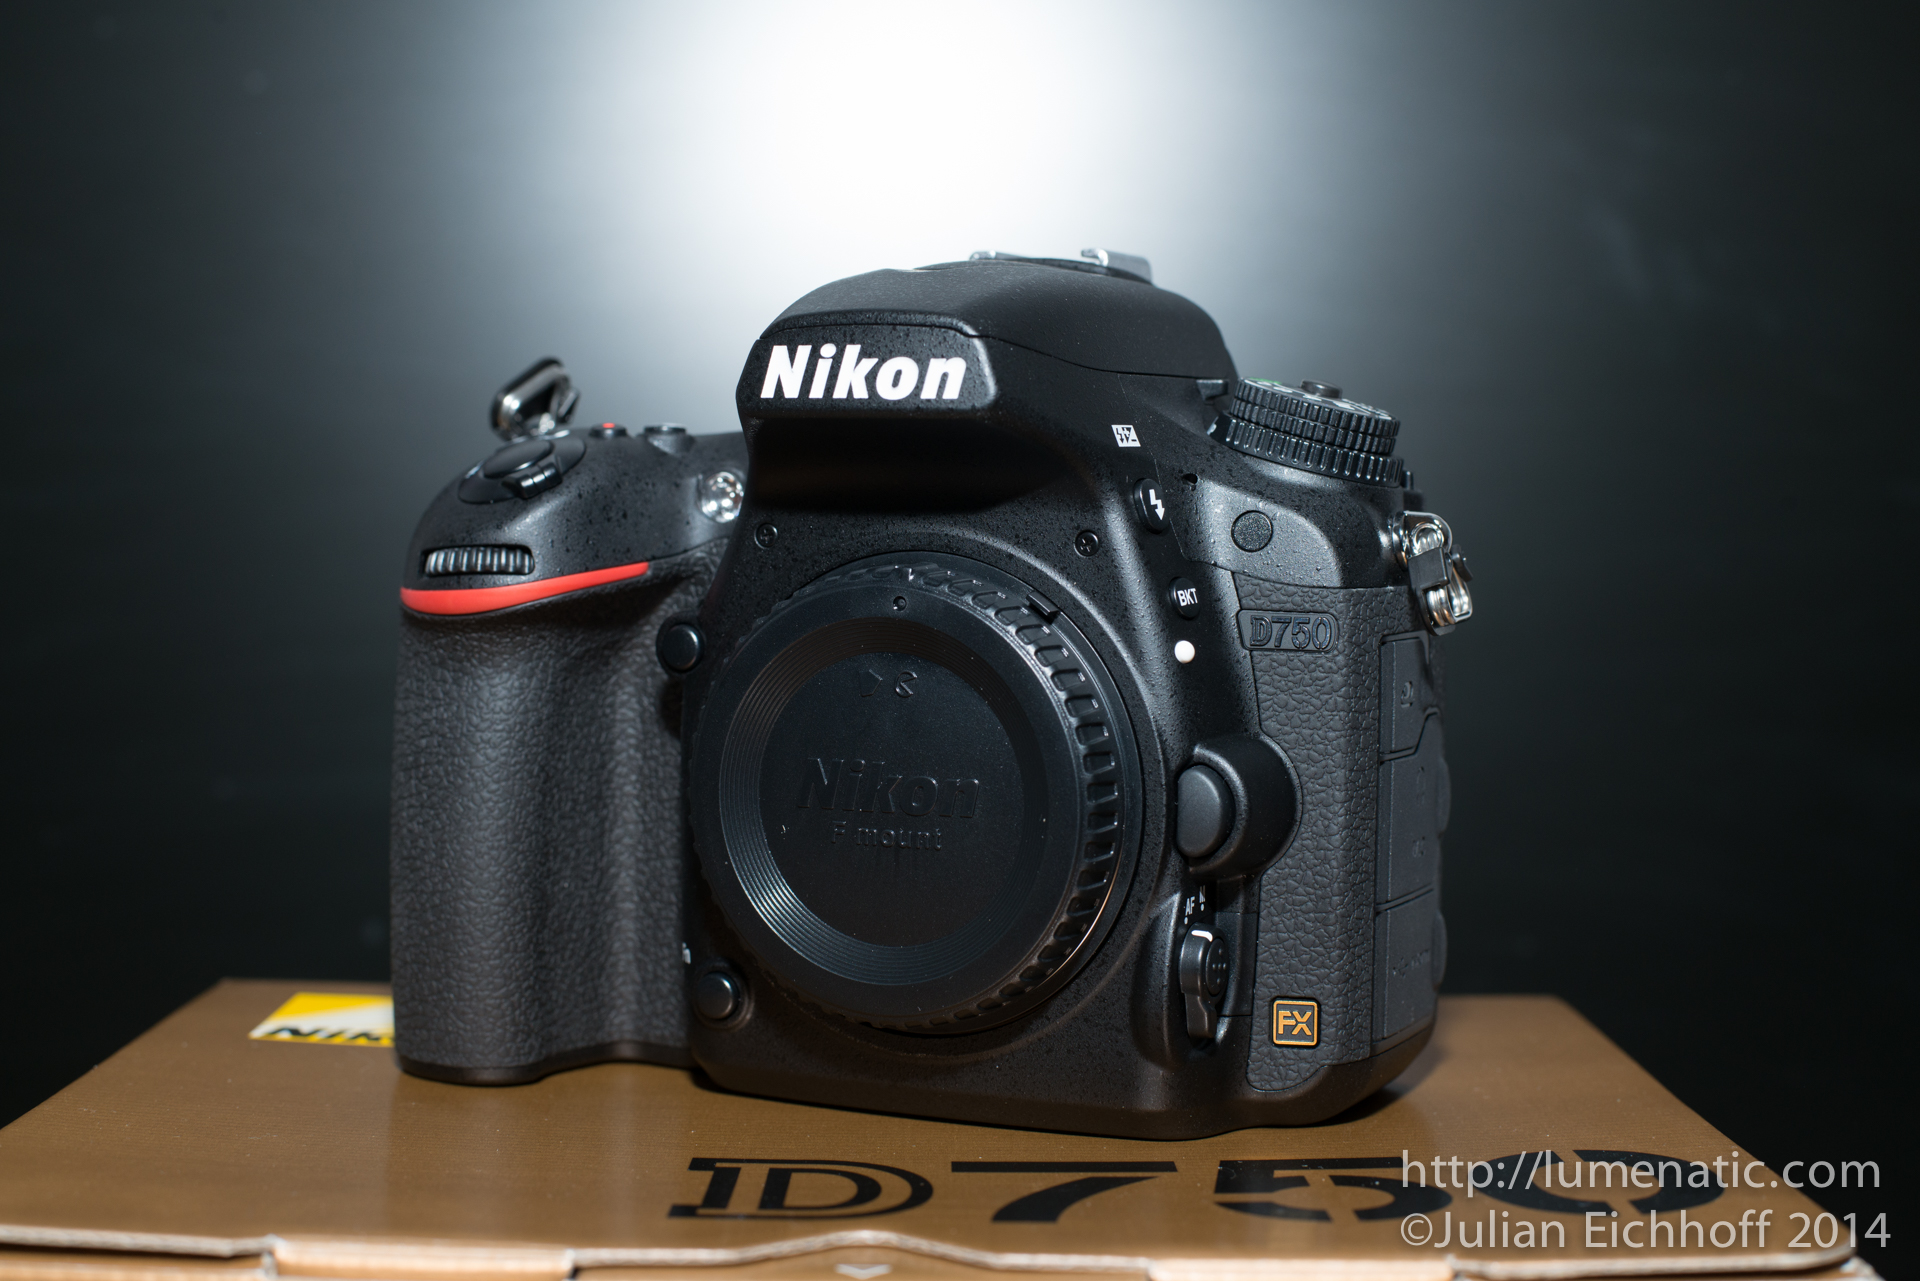 First impressions of the Nikon D750